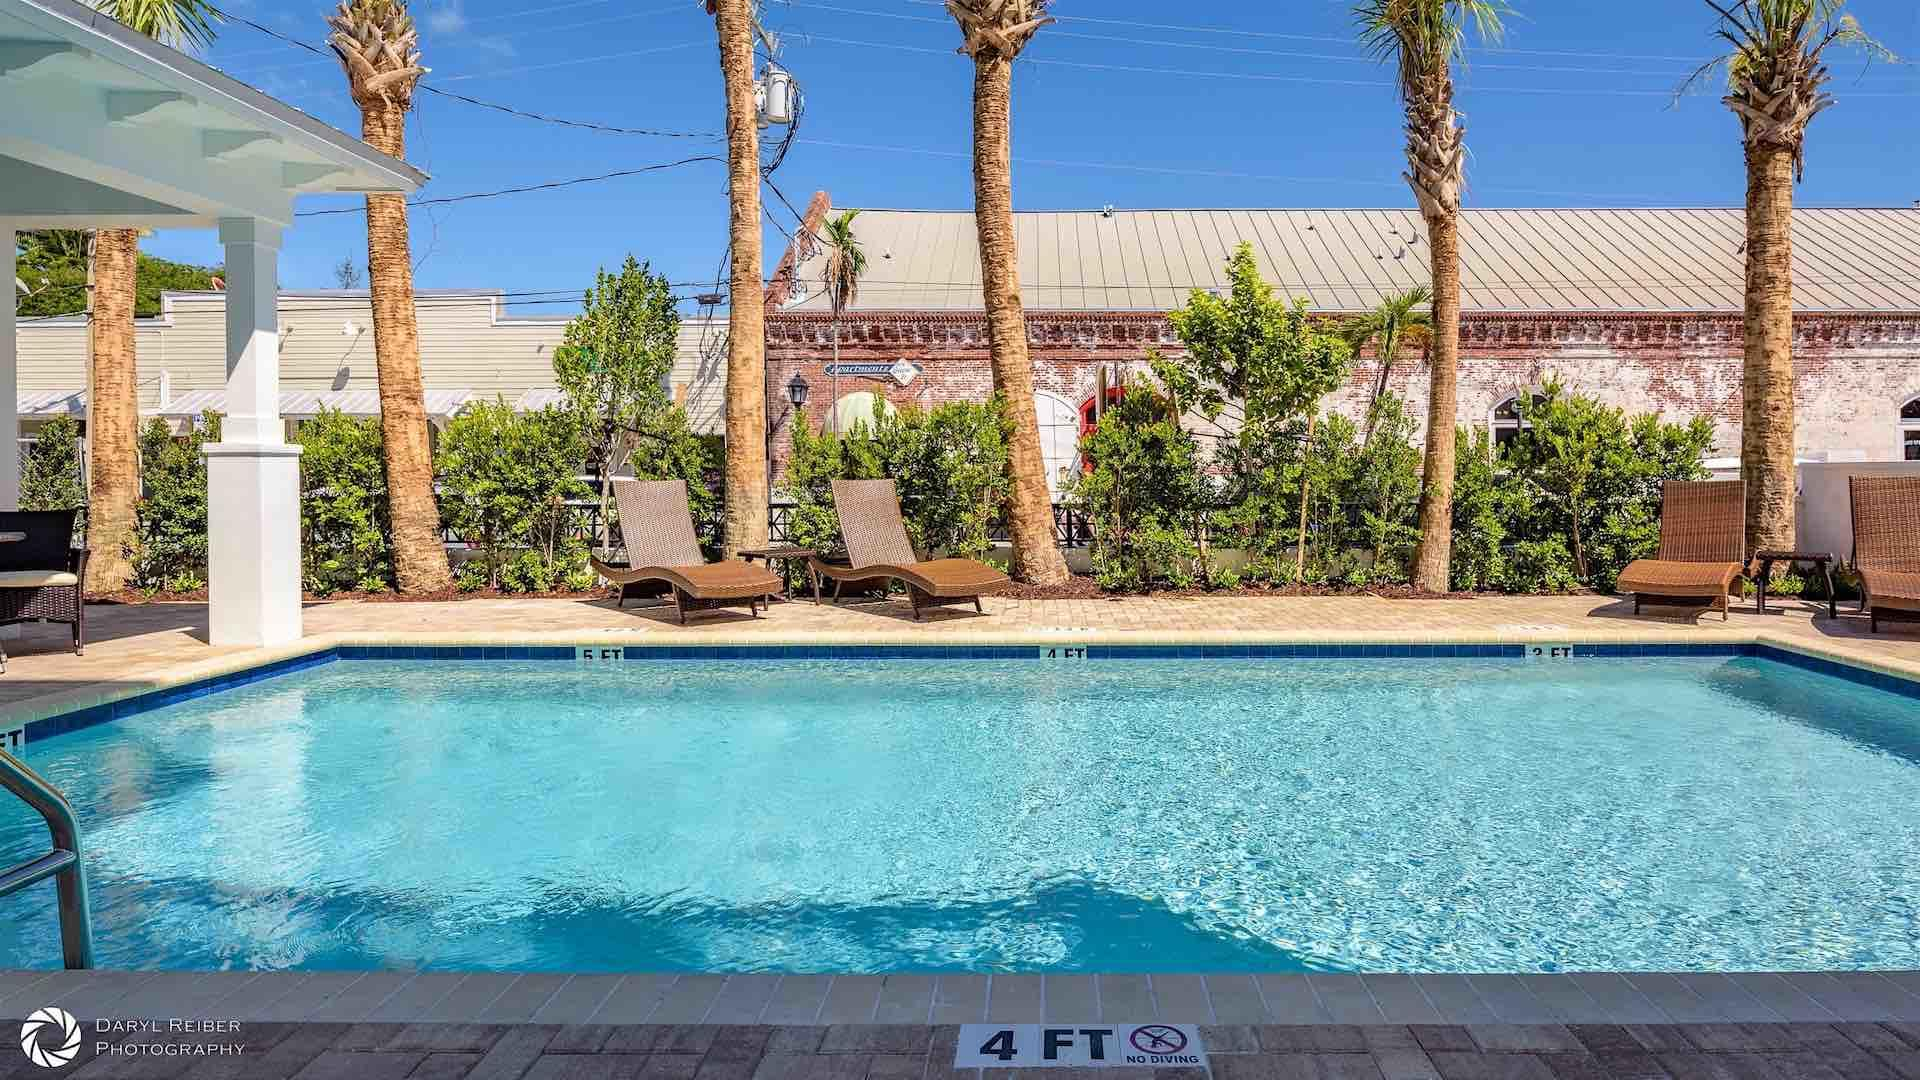 Spend your days soaking up the sun at the Community Pool, which is heated in the cooler months...